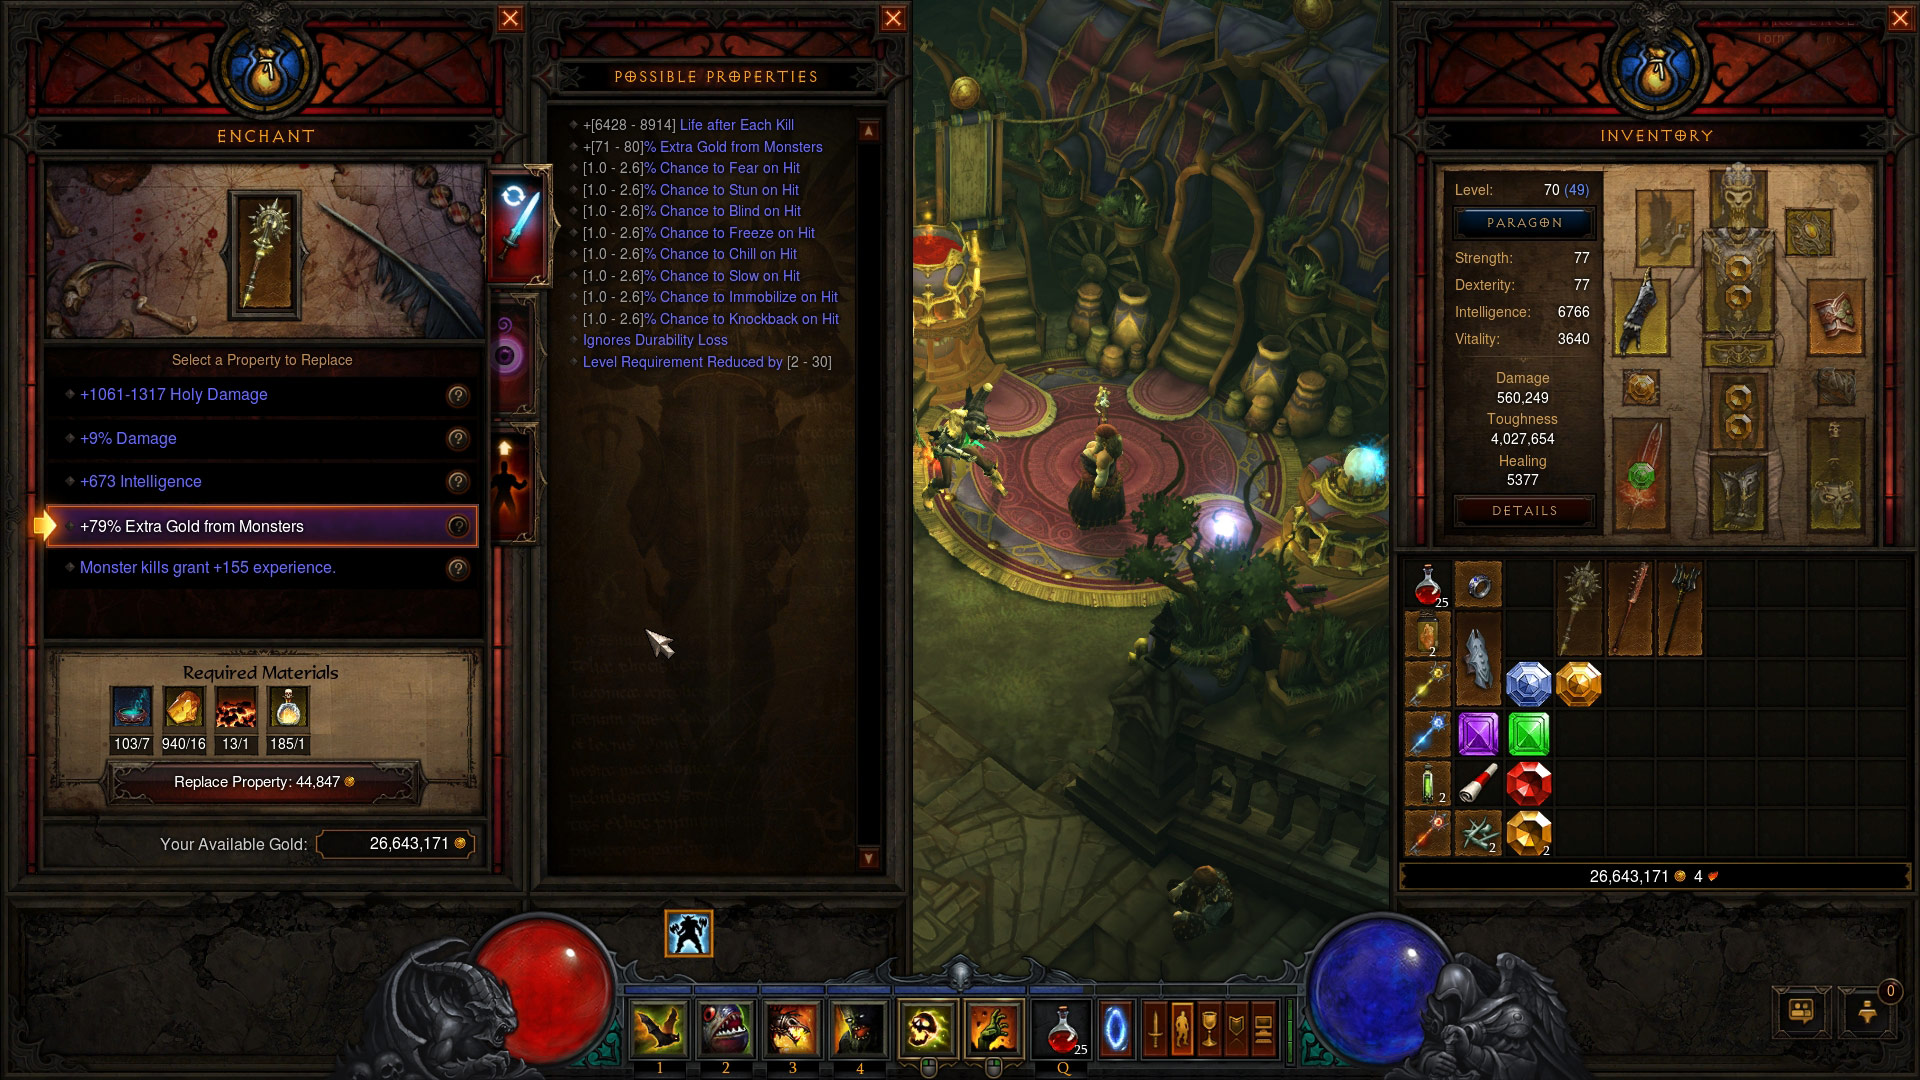 Screenshot de Diablo III: Reaper of Souls.